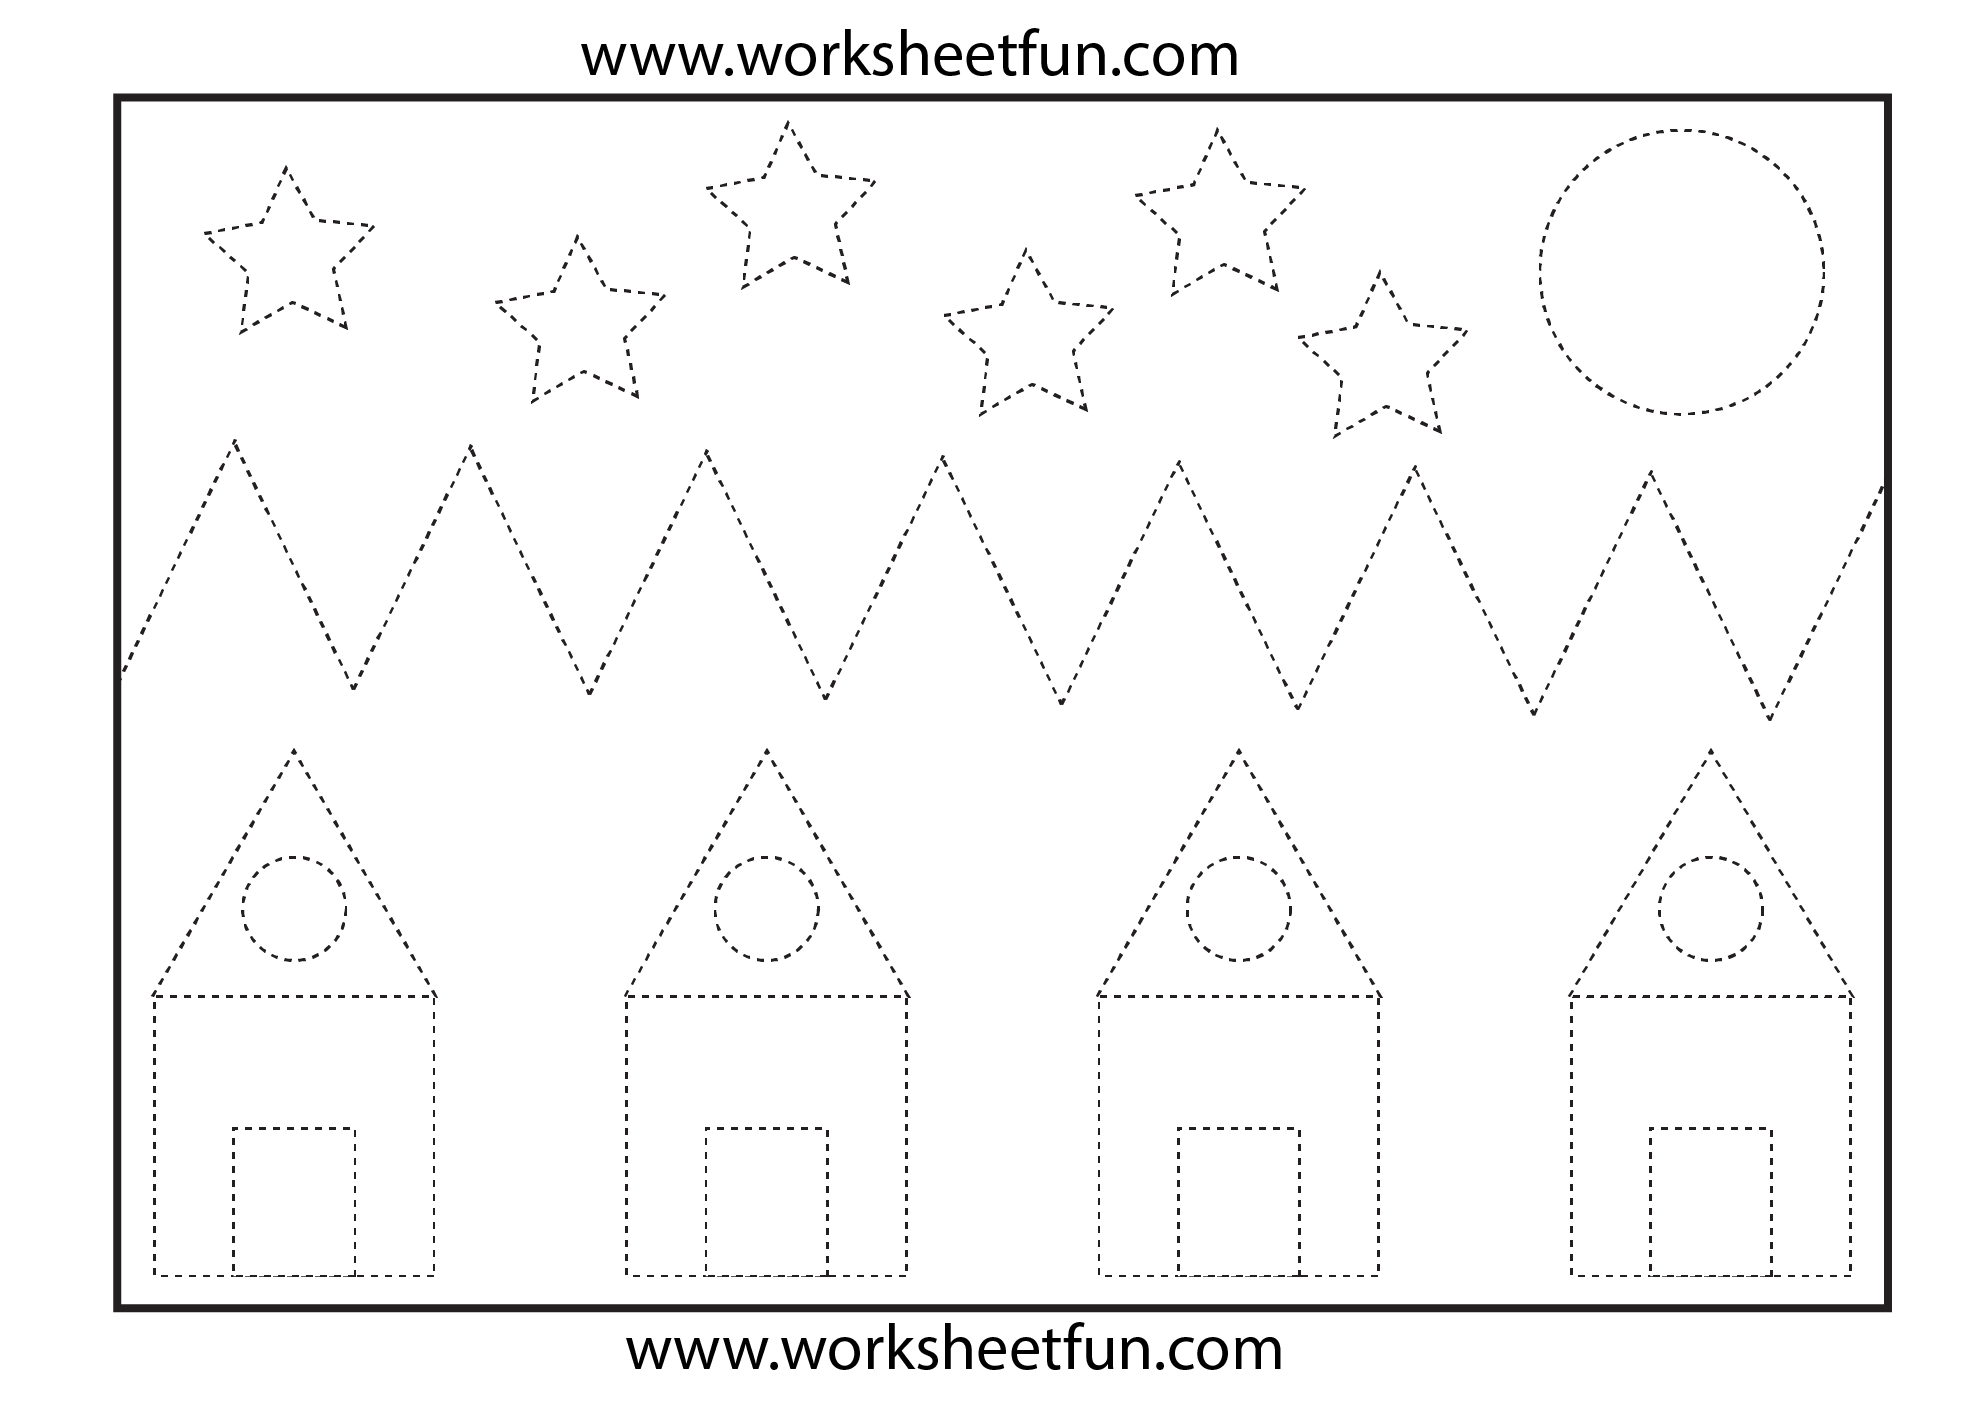 Worksheets Tracing Shapes Worksheets shapes tracing worksheets printable pinterest worksheets